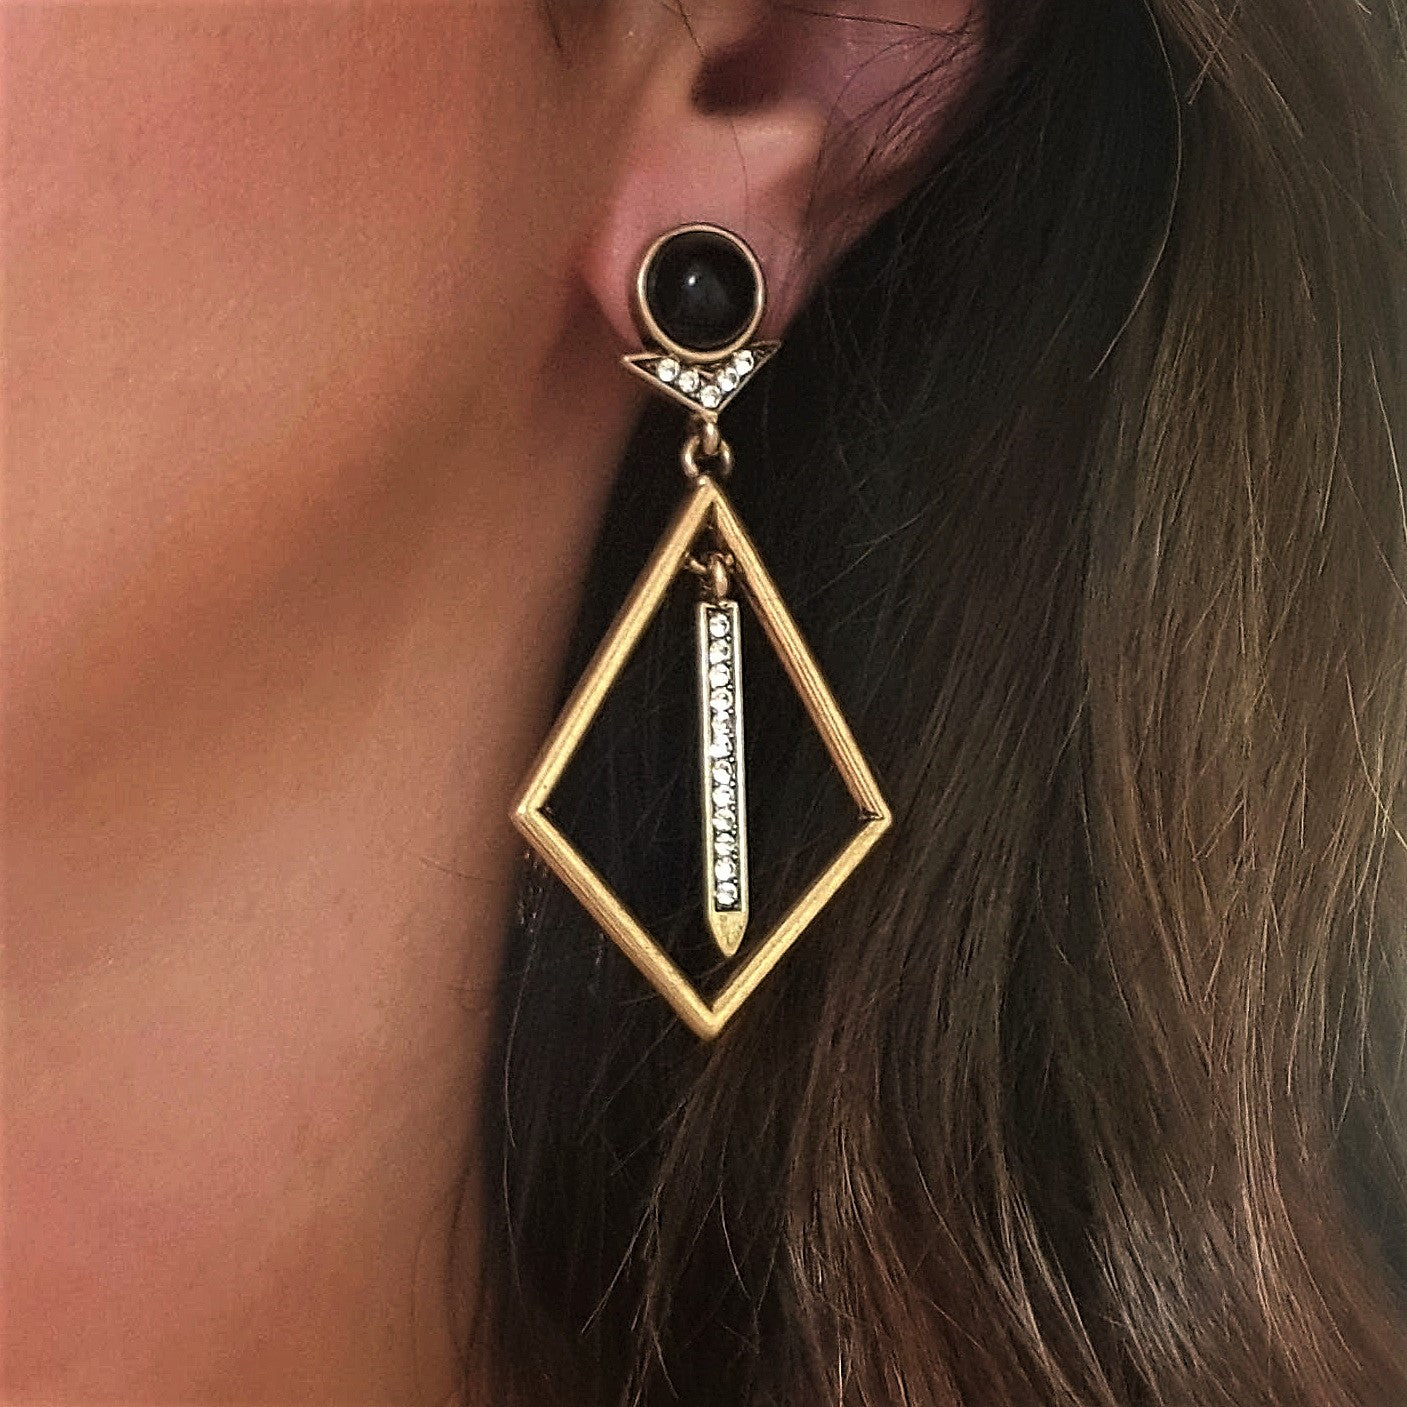 Gold diamond shaped drop cocktail earrings - Chubby Precious Accessories